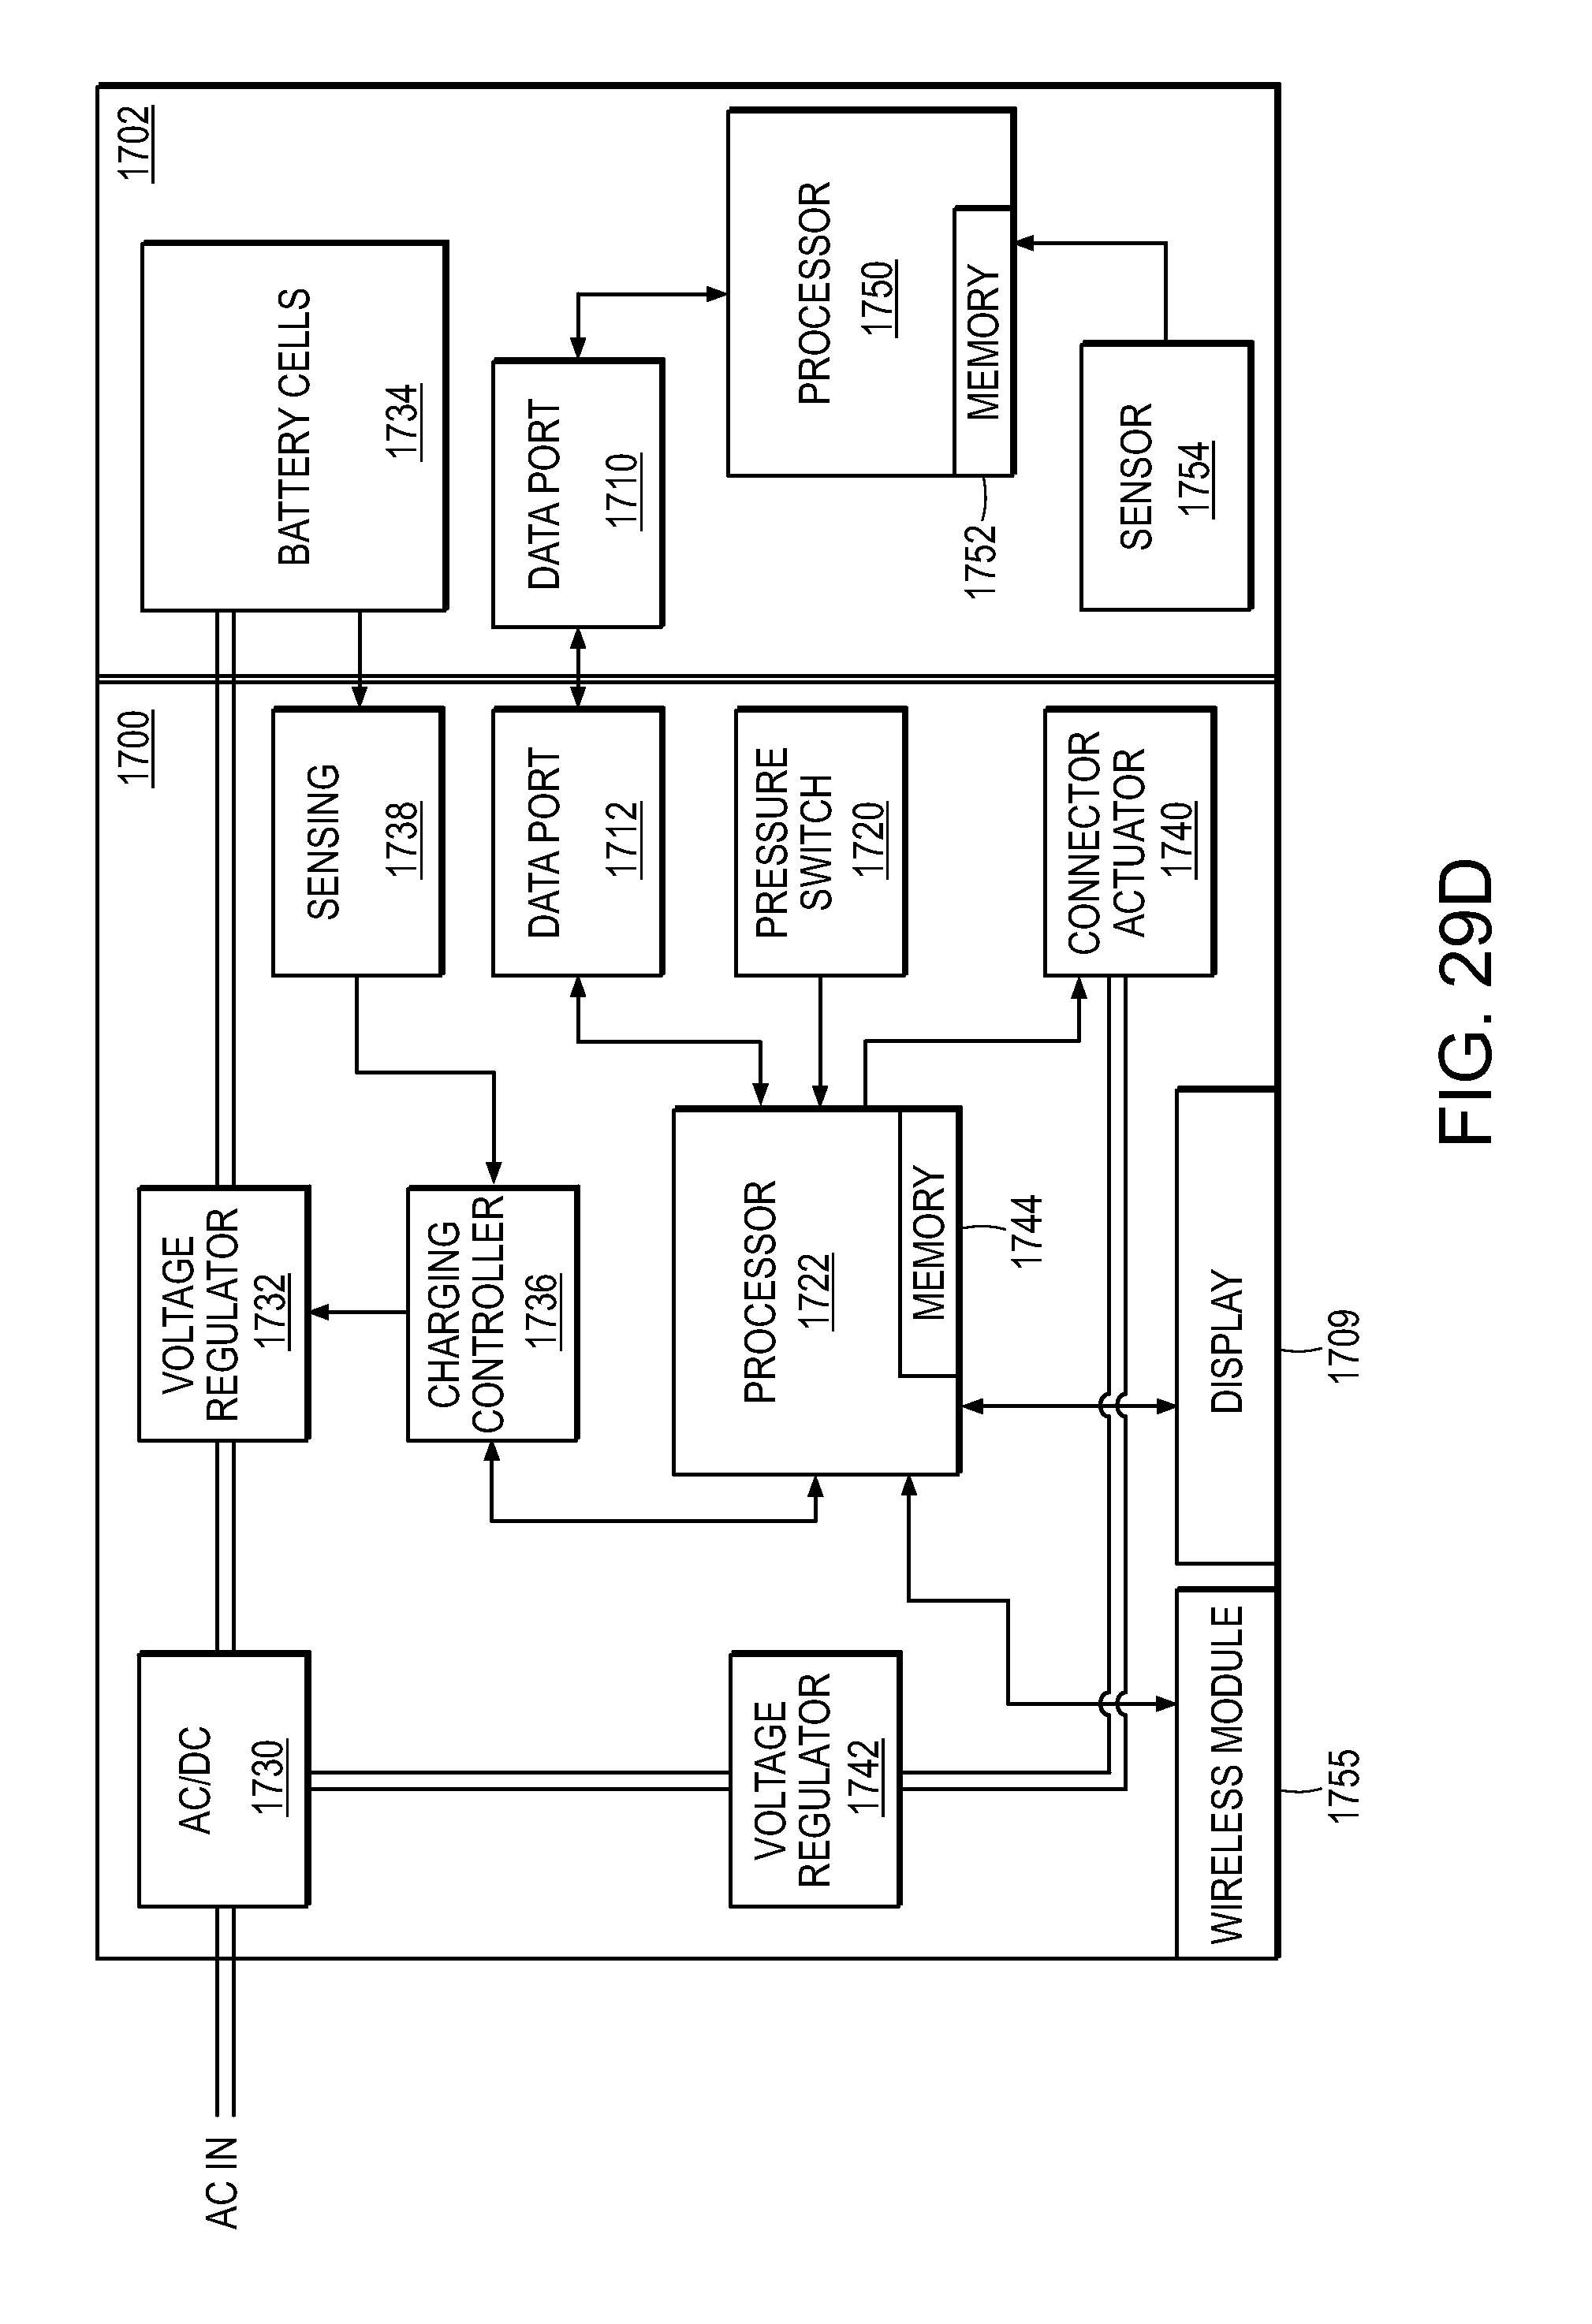 20a raptor chip wiring diagram us10045779b2 surgical instrument system comprising an inspection  us10045779b2 surgical instrument